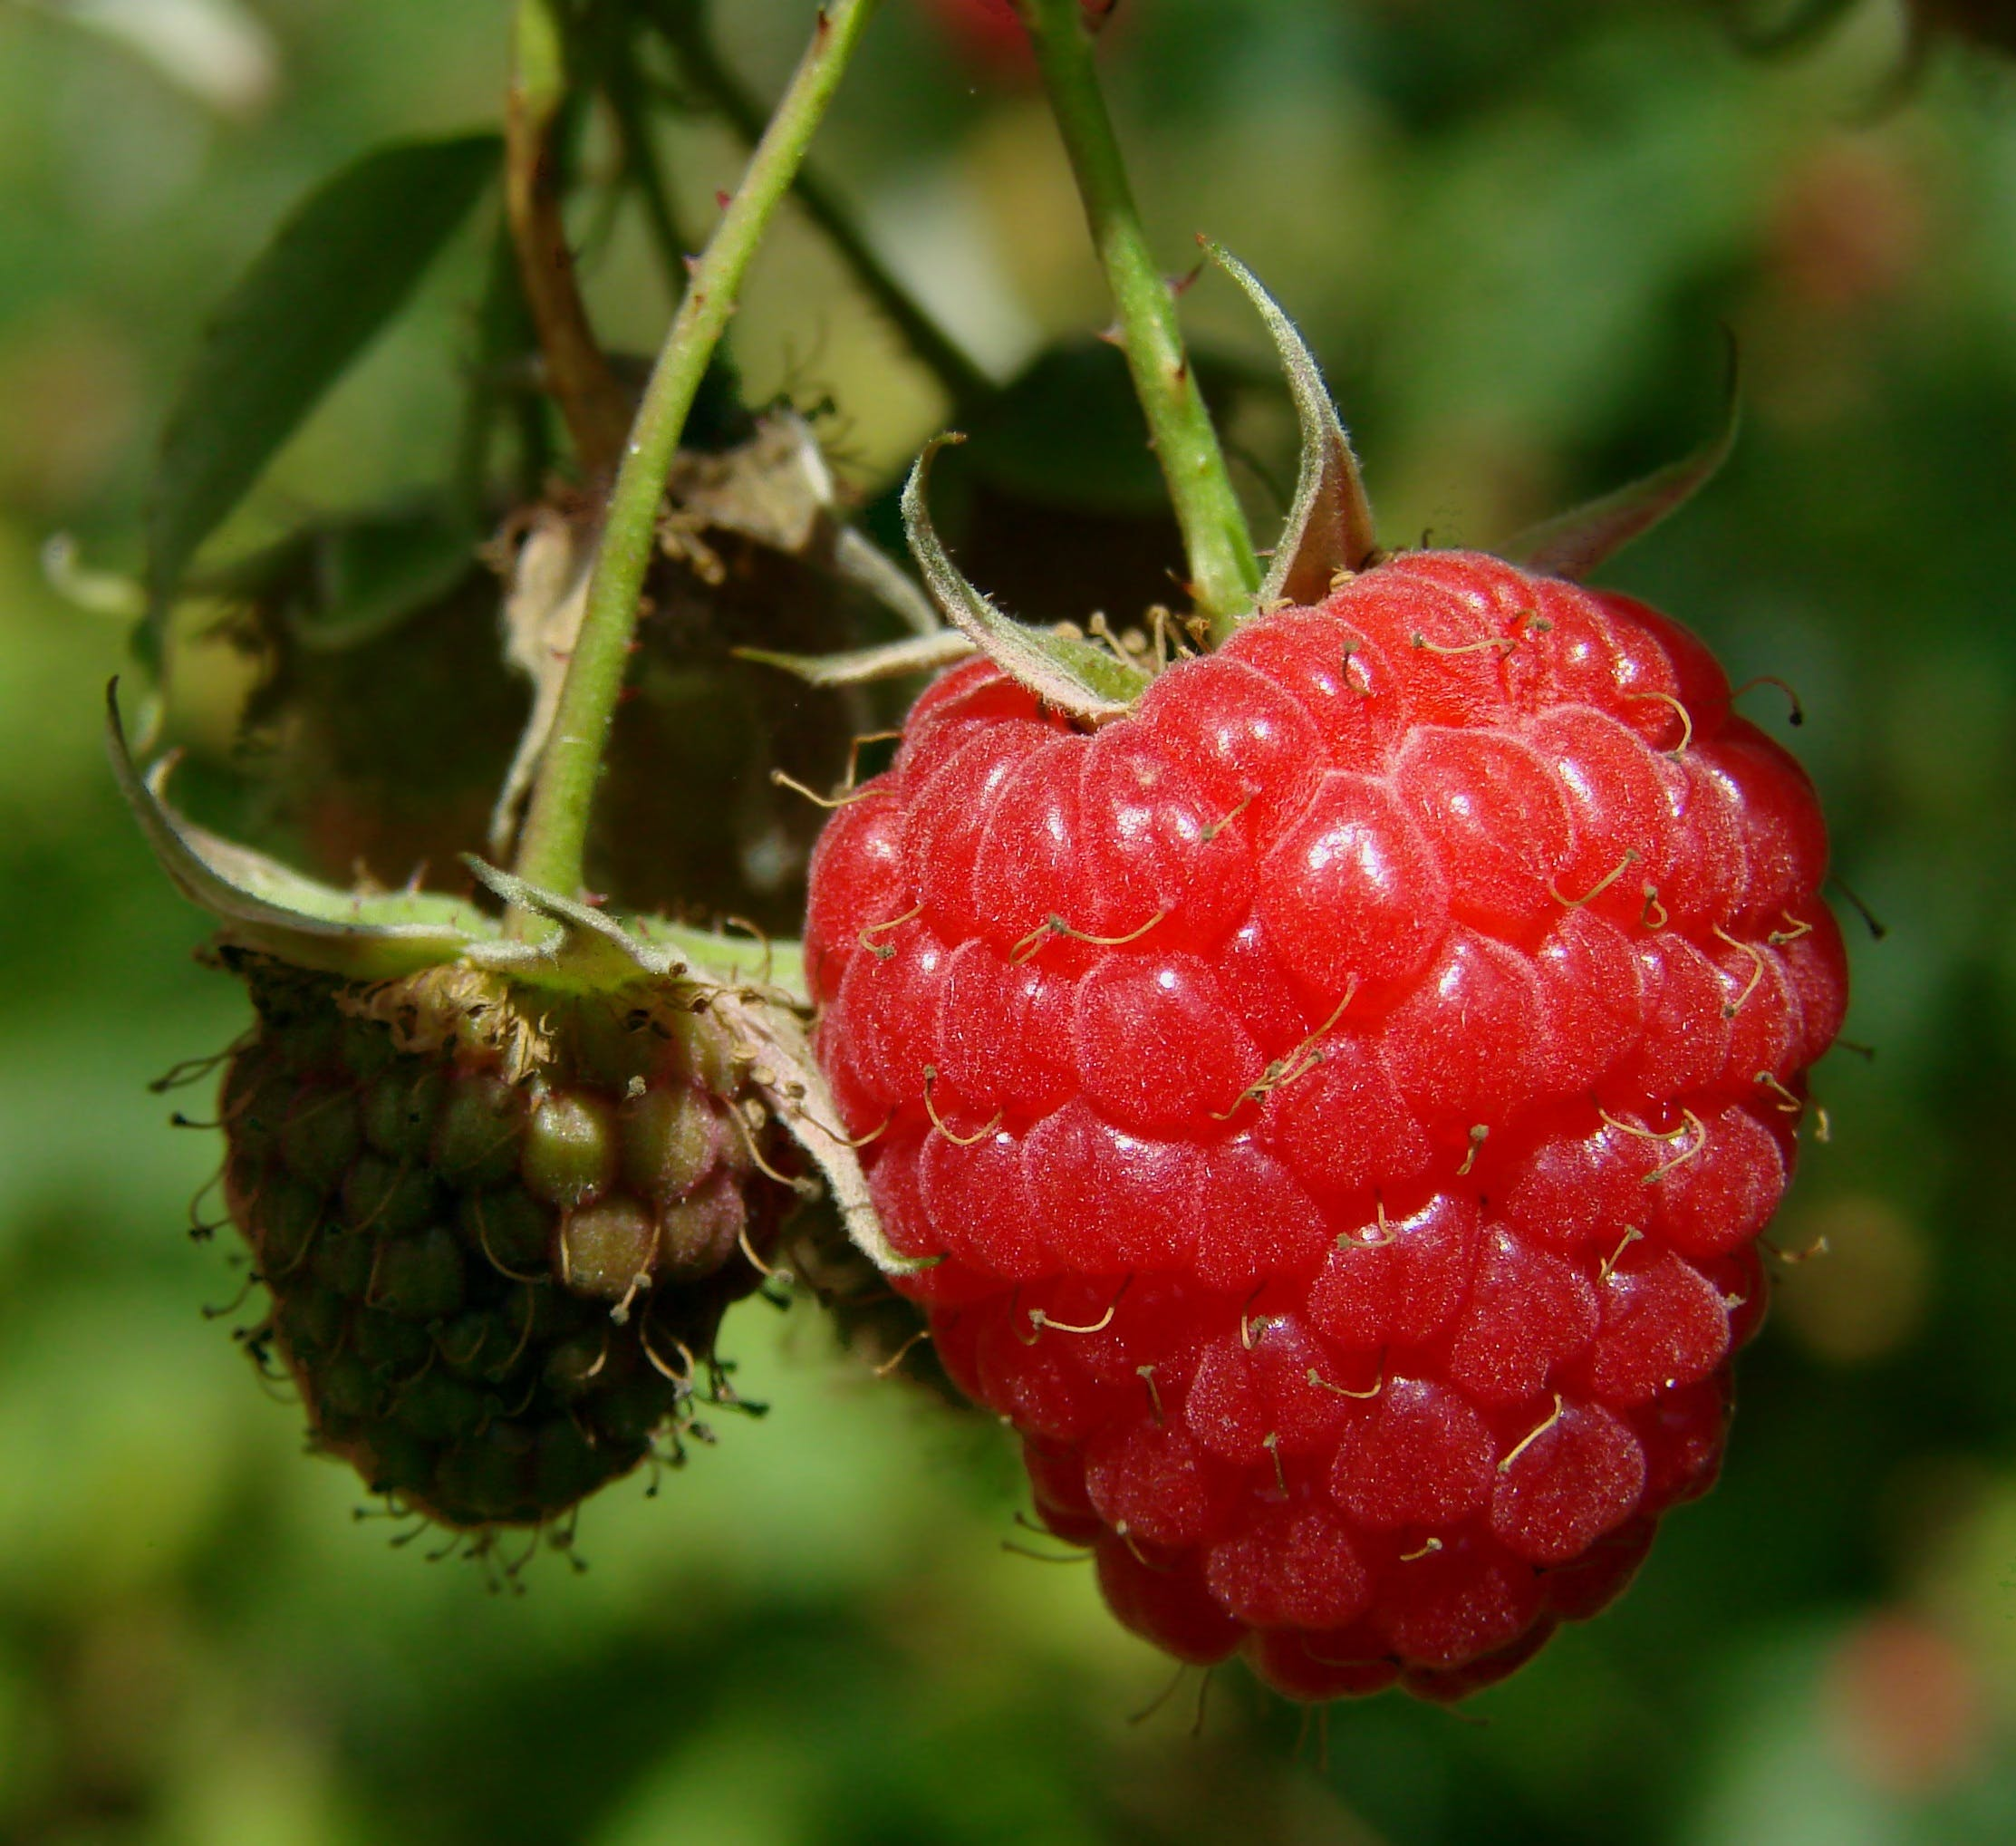 Red Raspberry on the Plant